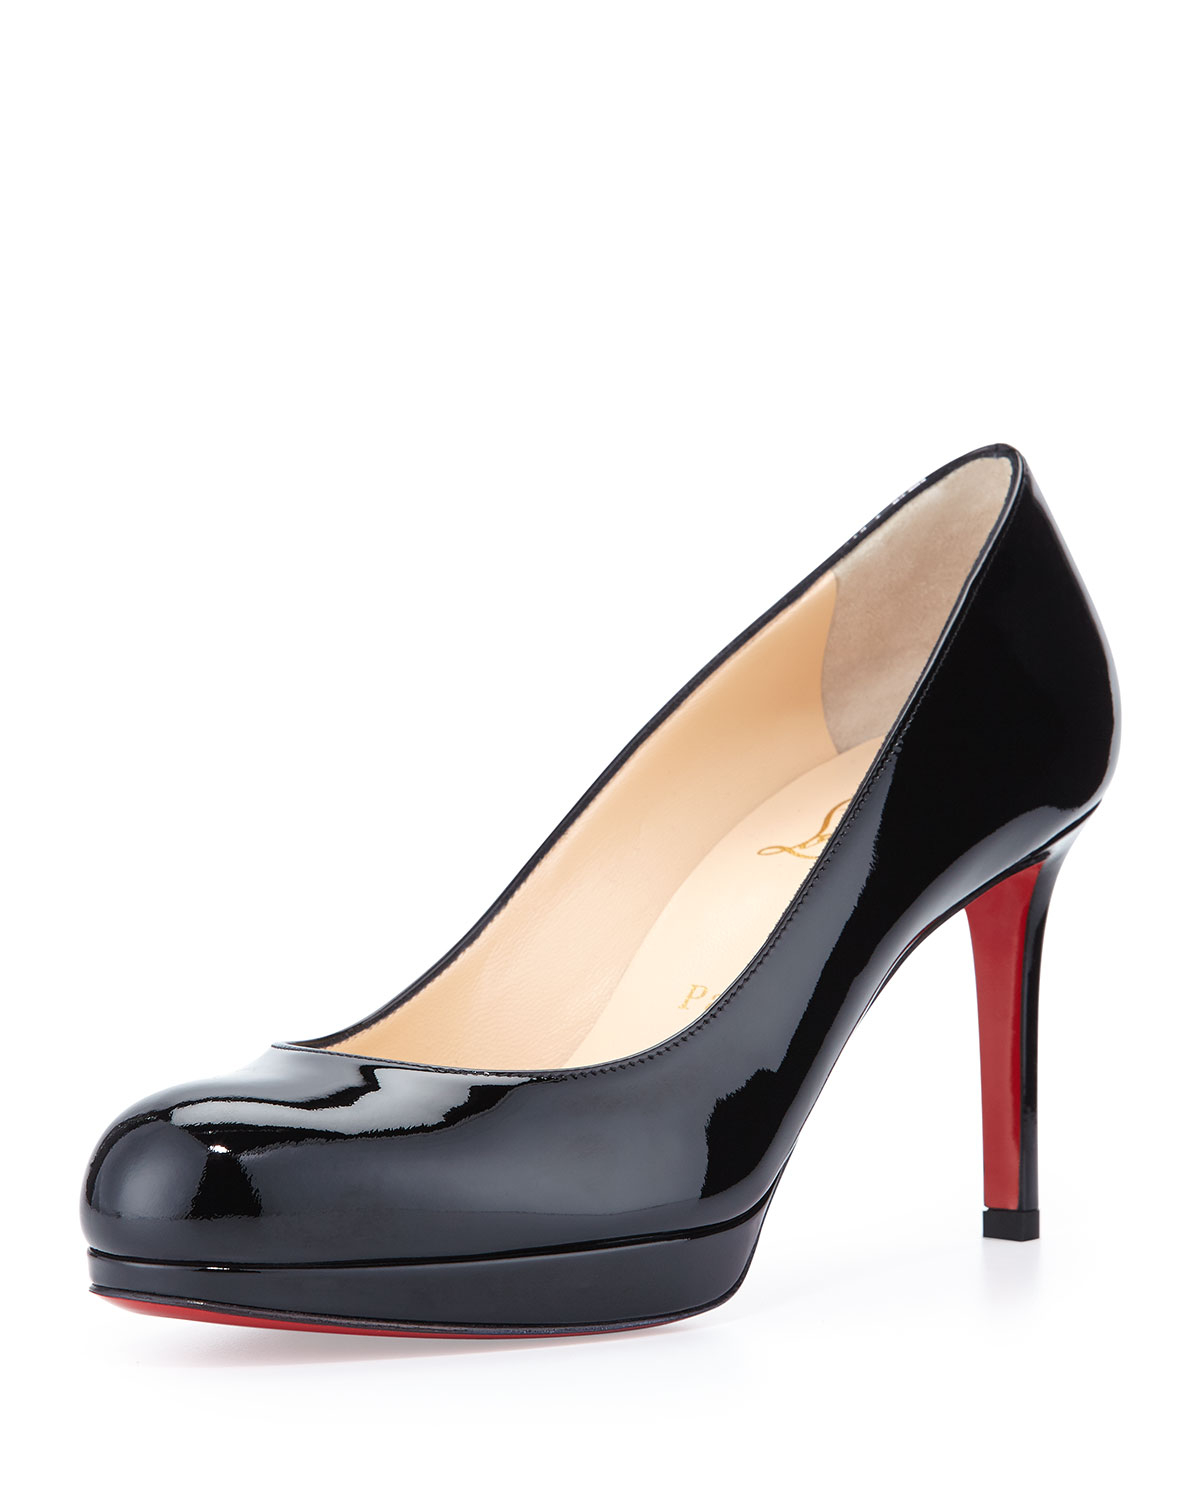 christian louboutin round-toe pumps